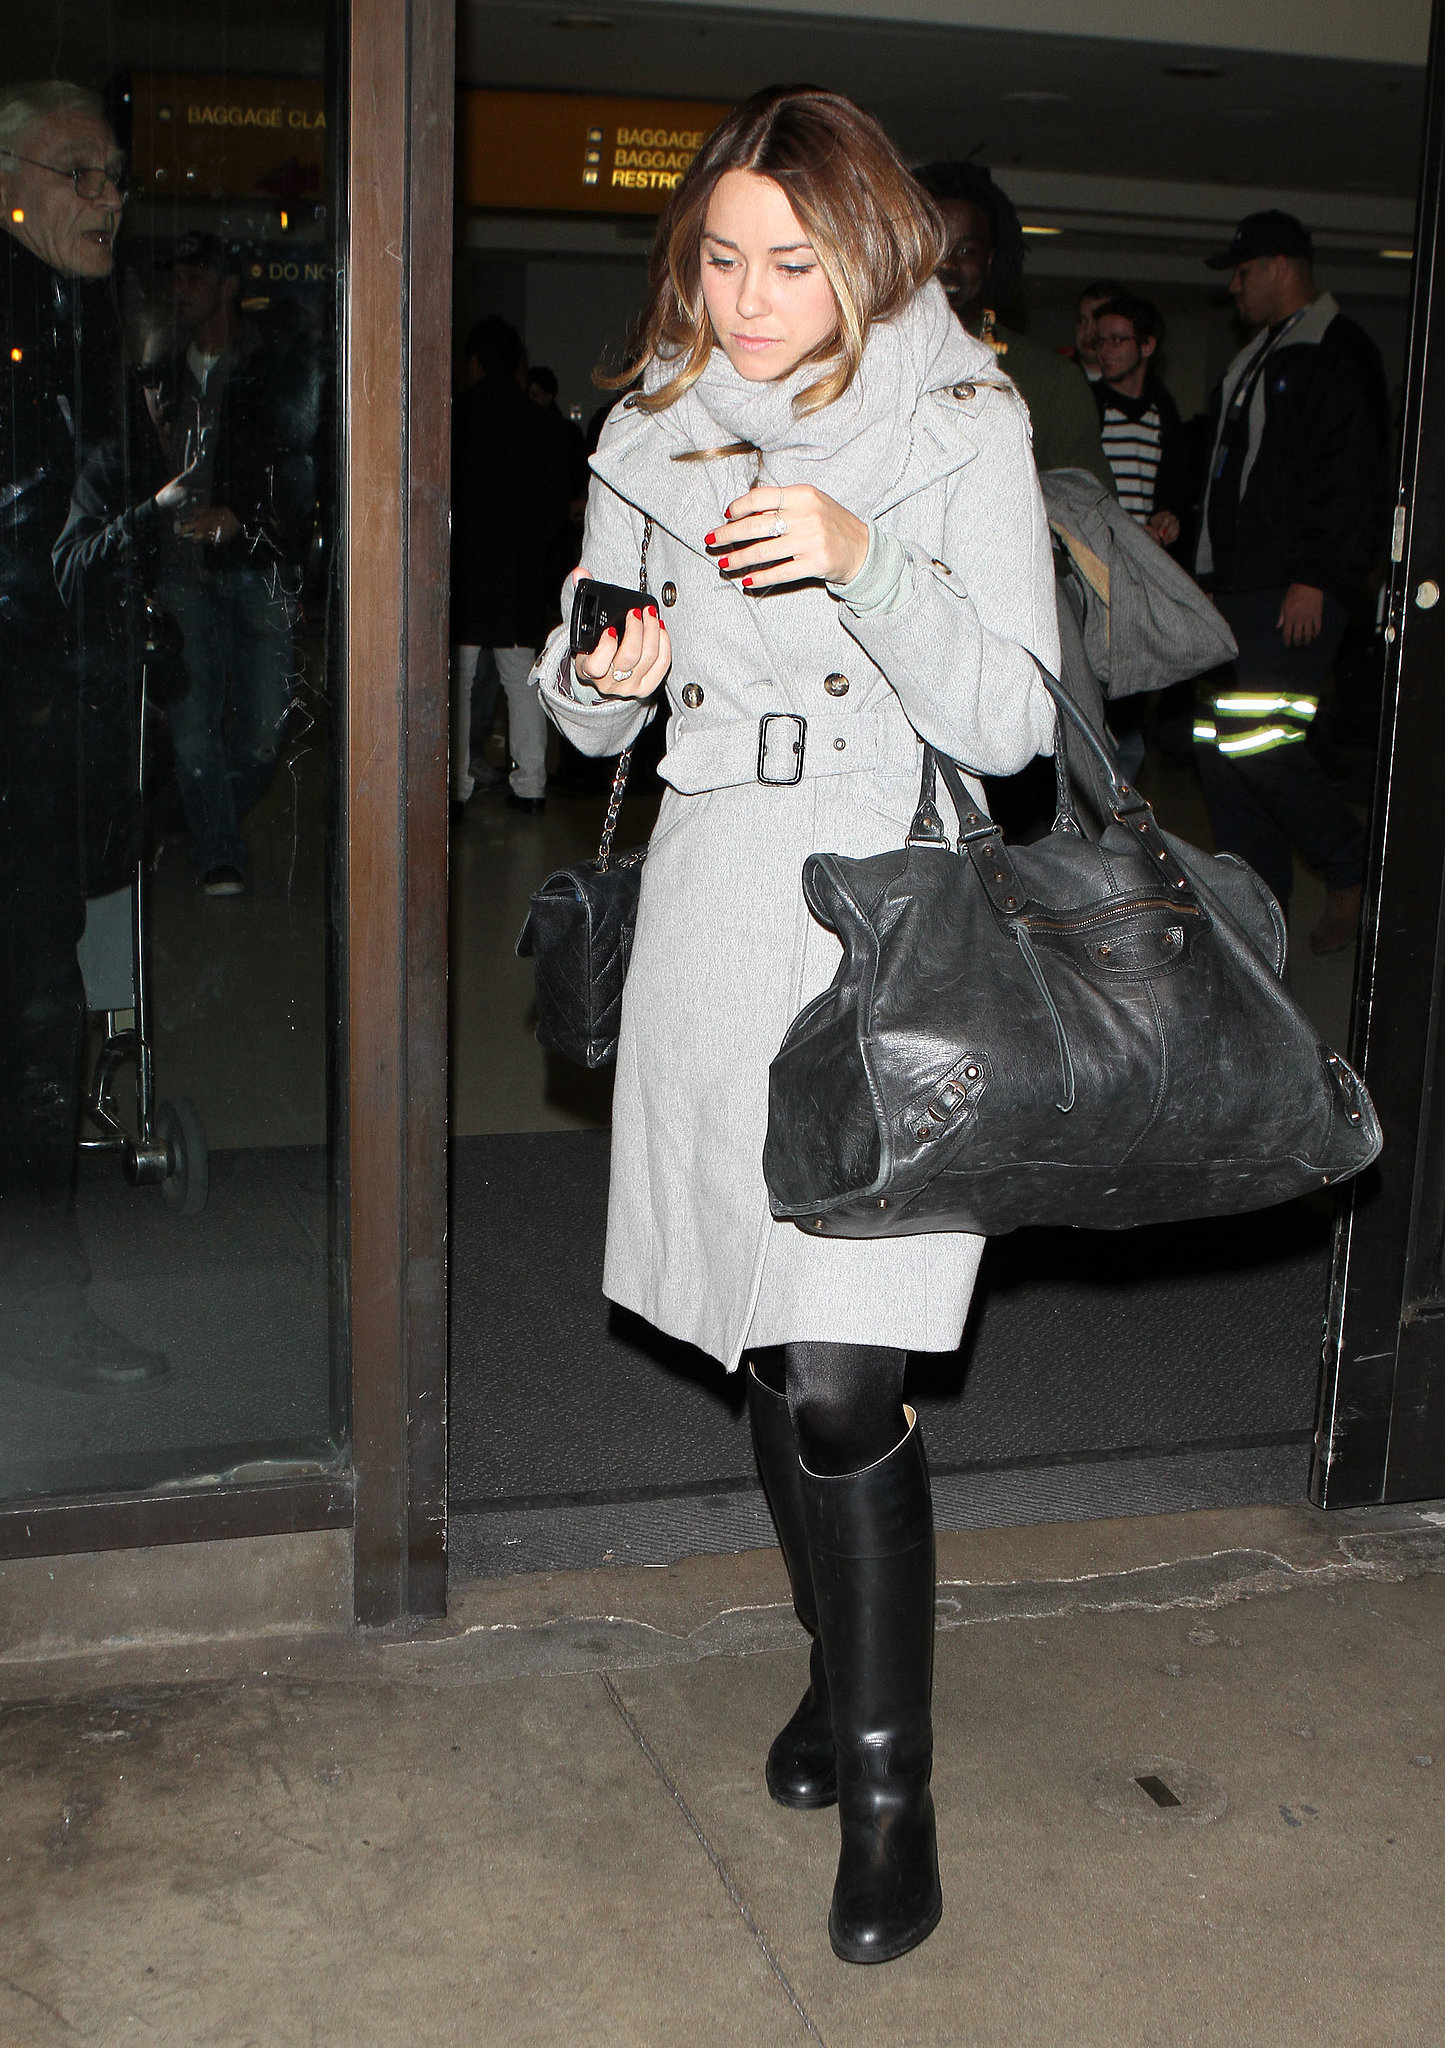 Lauren bundled up in a long gray trenchcoat, rain-proof boots, and an oversize Balenciaga bag at LAX. Lesson from Lauren: it's all about layers for a fashionable and functional travel style.